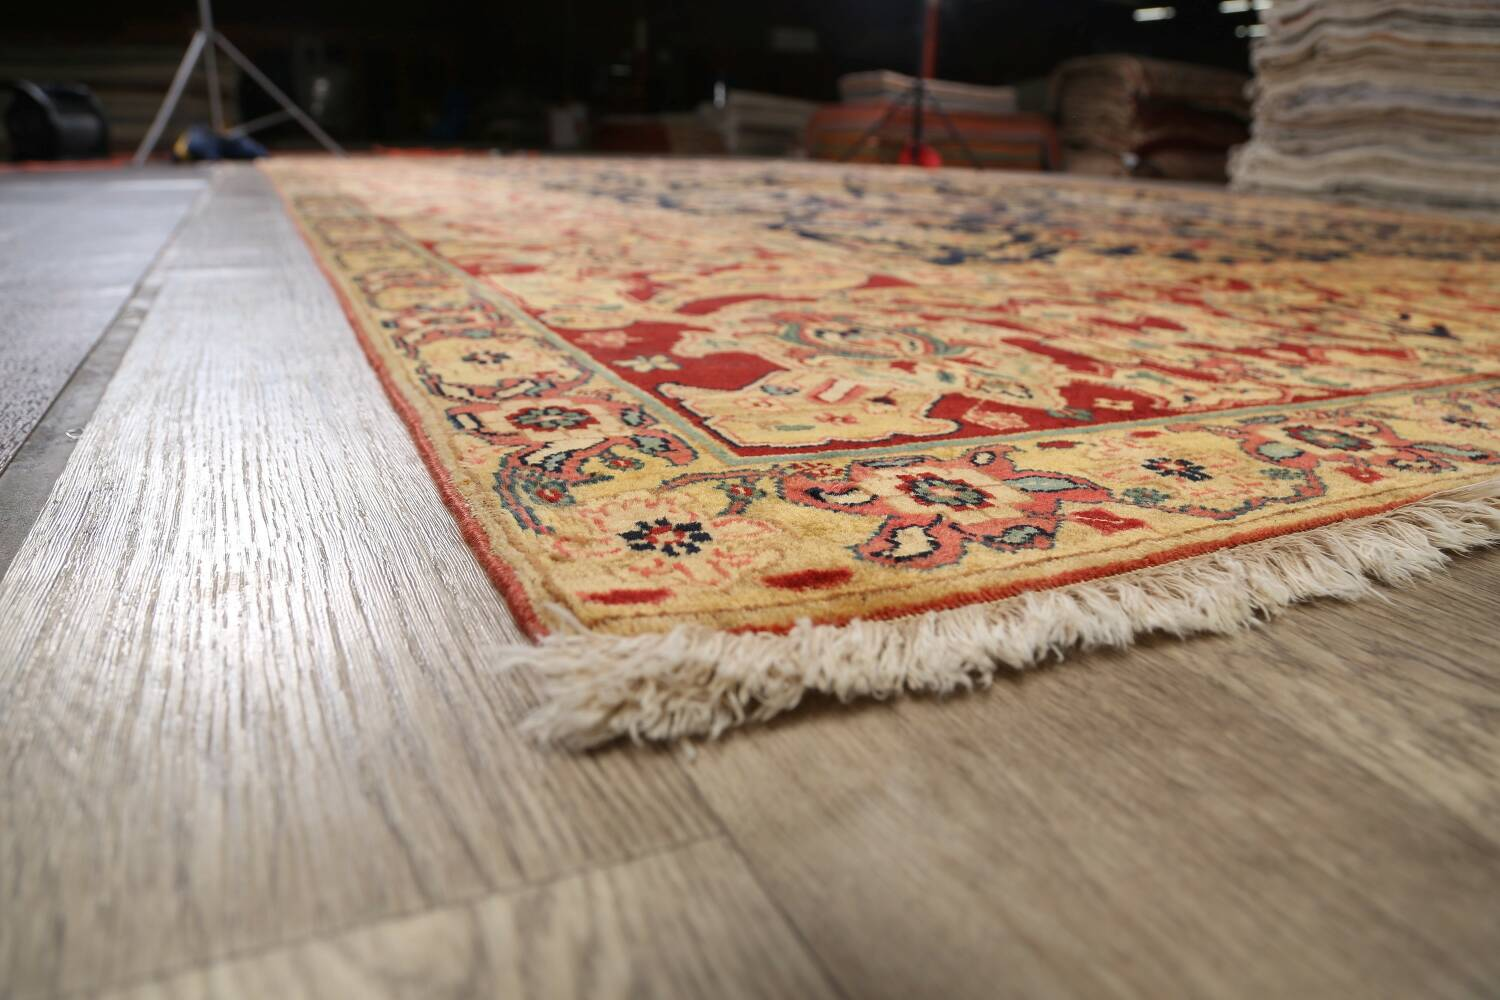 All-Over Floral Agra Oriental Area Rug 13x17 Large image 6